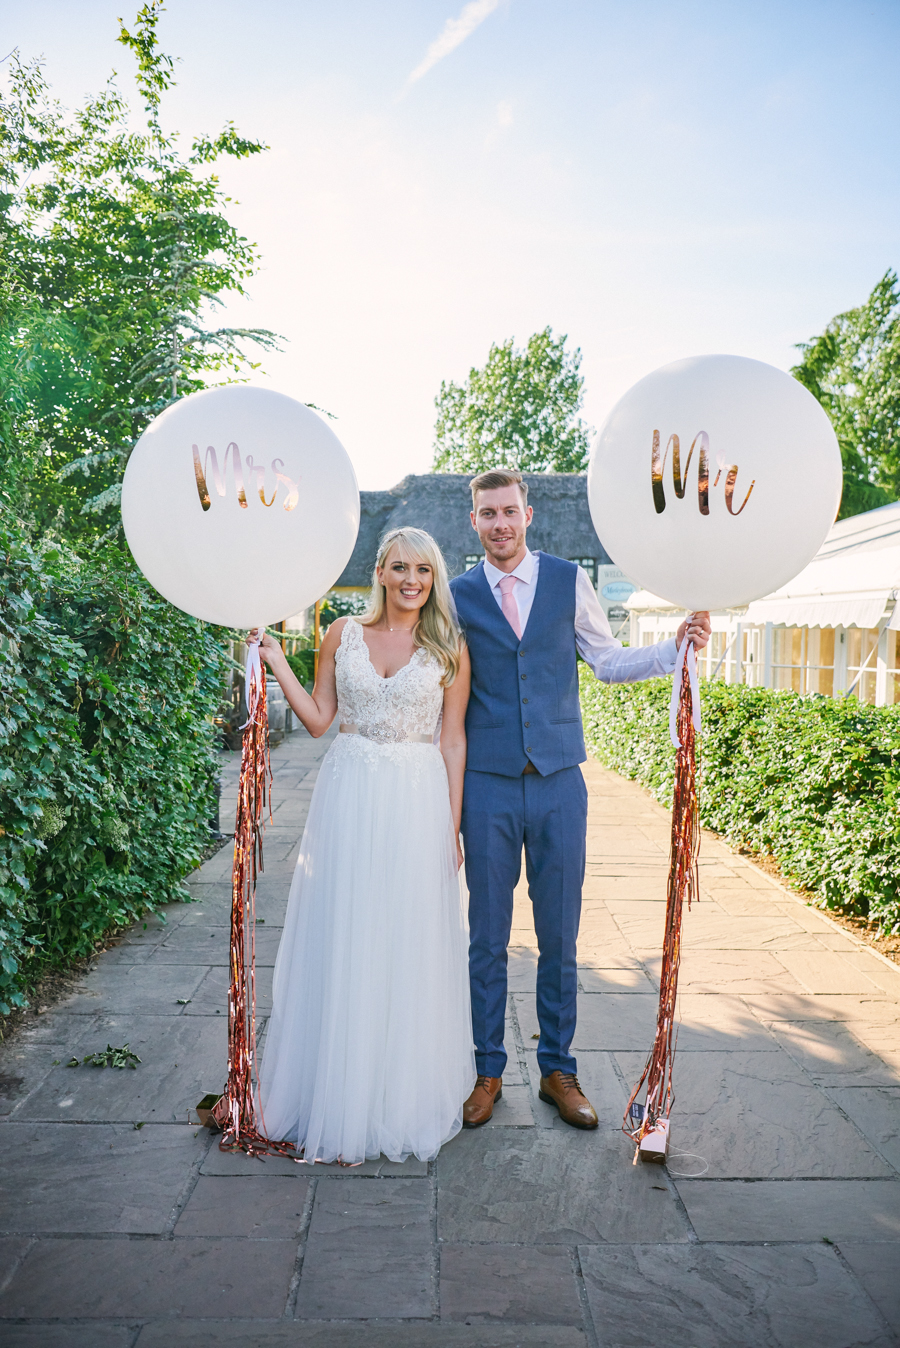 Penny and Ben's funfair wedding at Marleybrook with Rose Images (38)